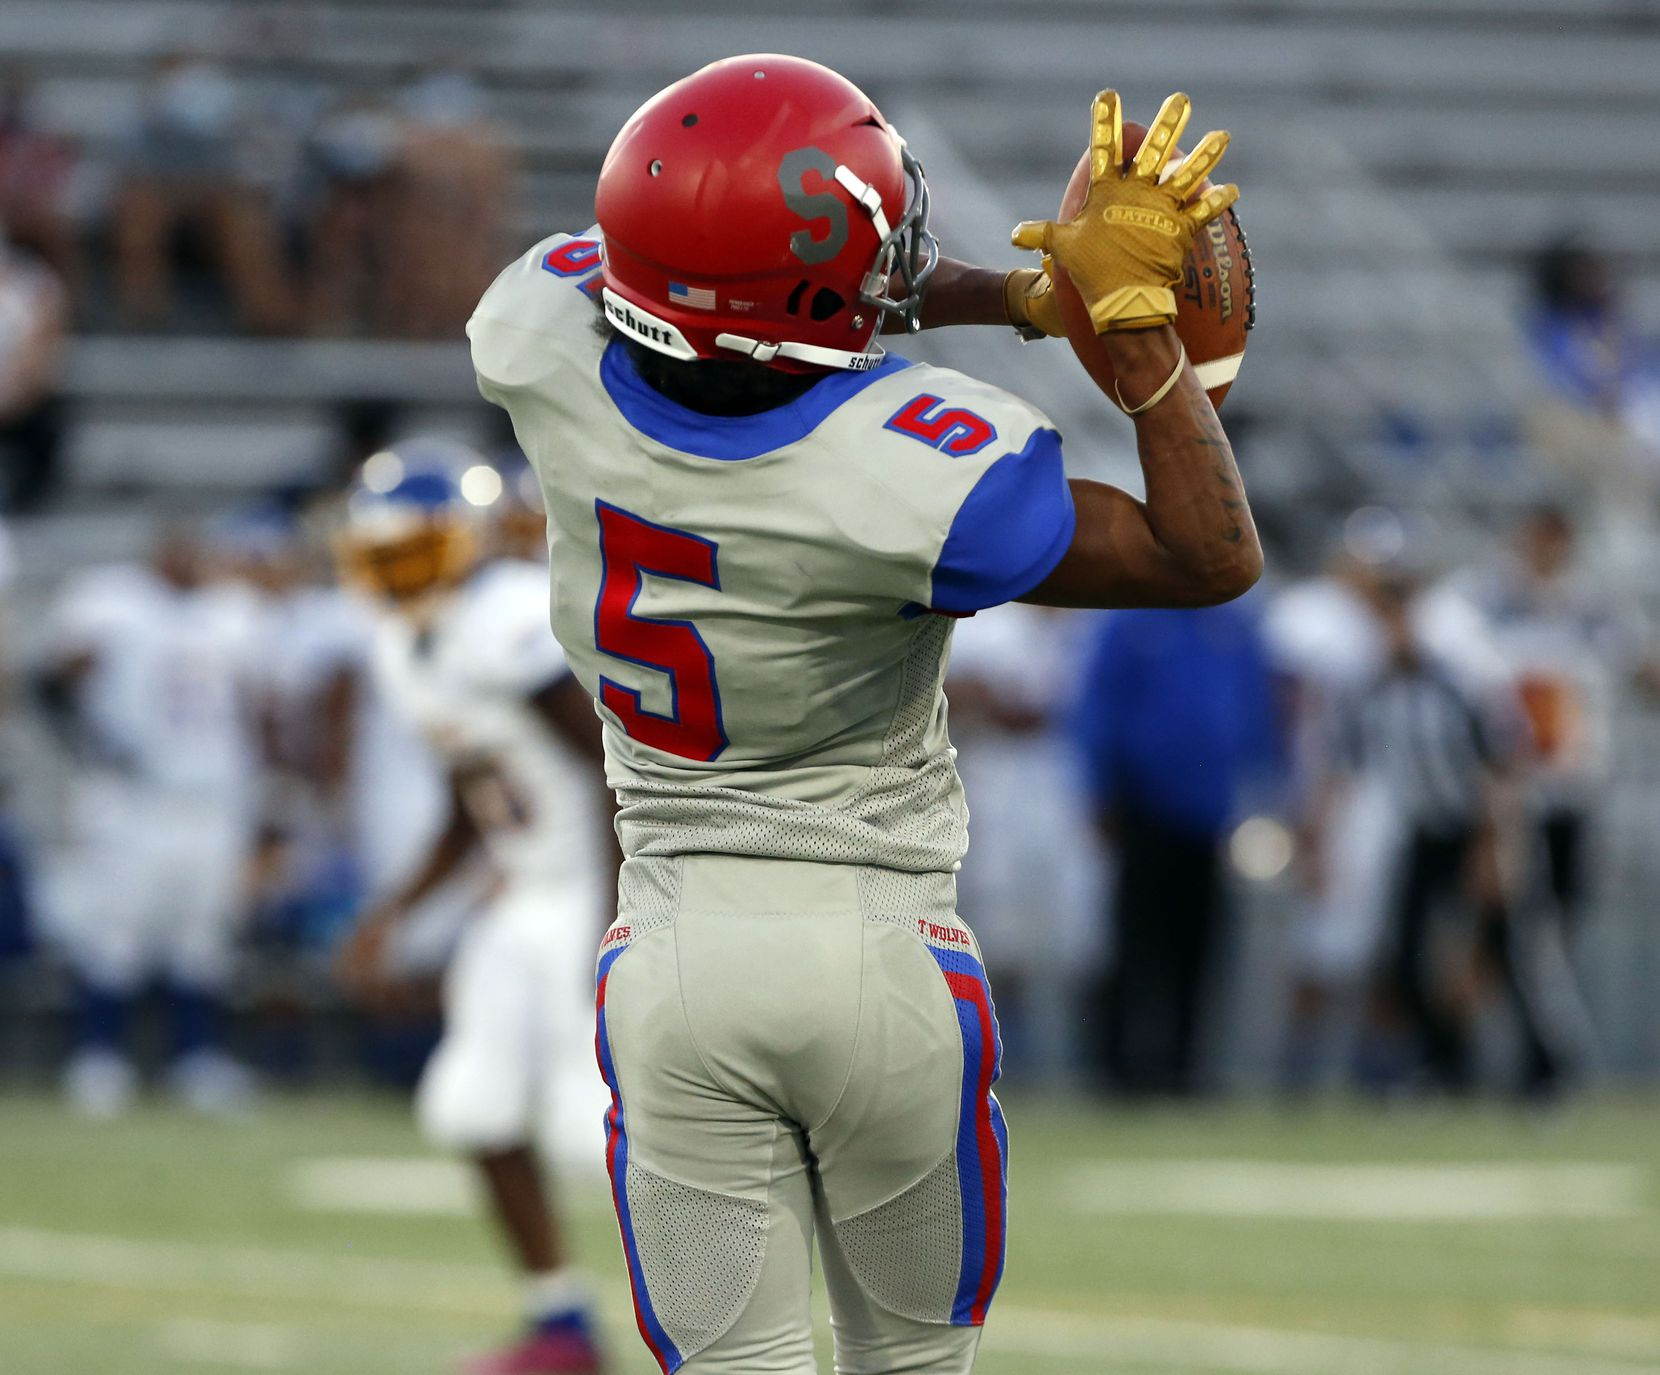 Spruce High Wilbert Trigg (5) grabs a pass during the first half of the season opening high school football game between against Samuell and Spruce High at Pleasant Grove Stadium in Dallas on Friday, August 27, 2021. (John F. Rhodes / Special Contributor)